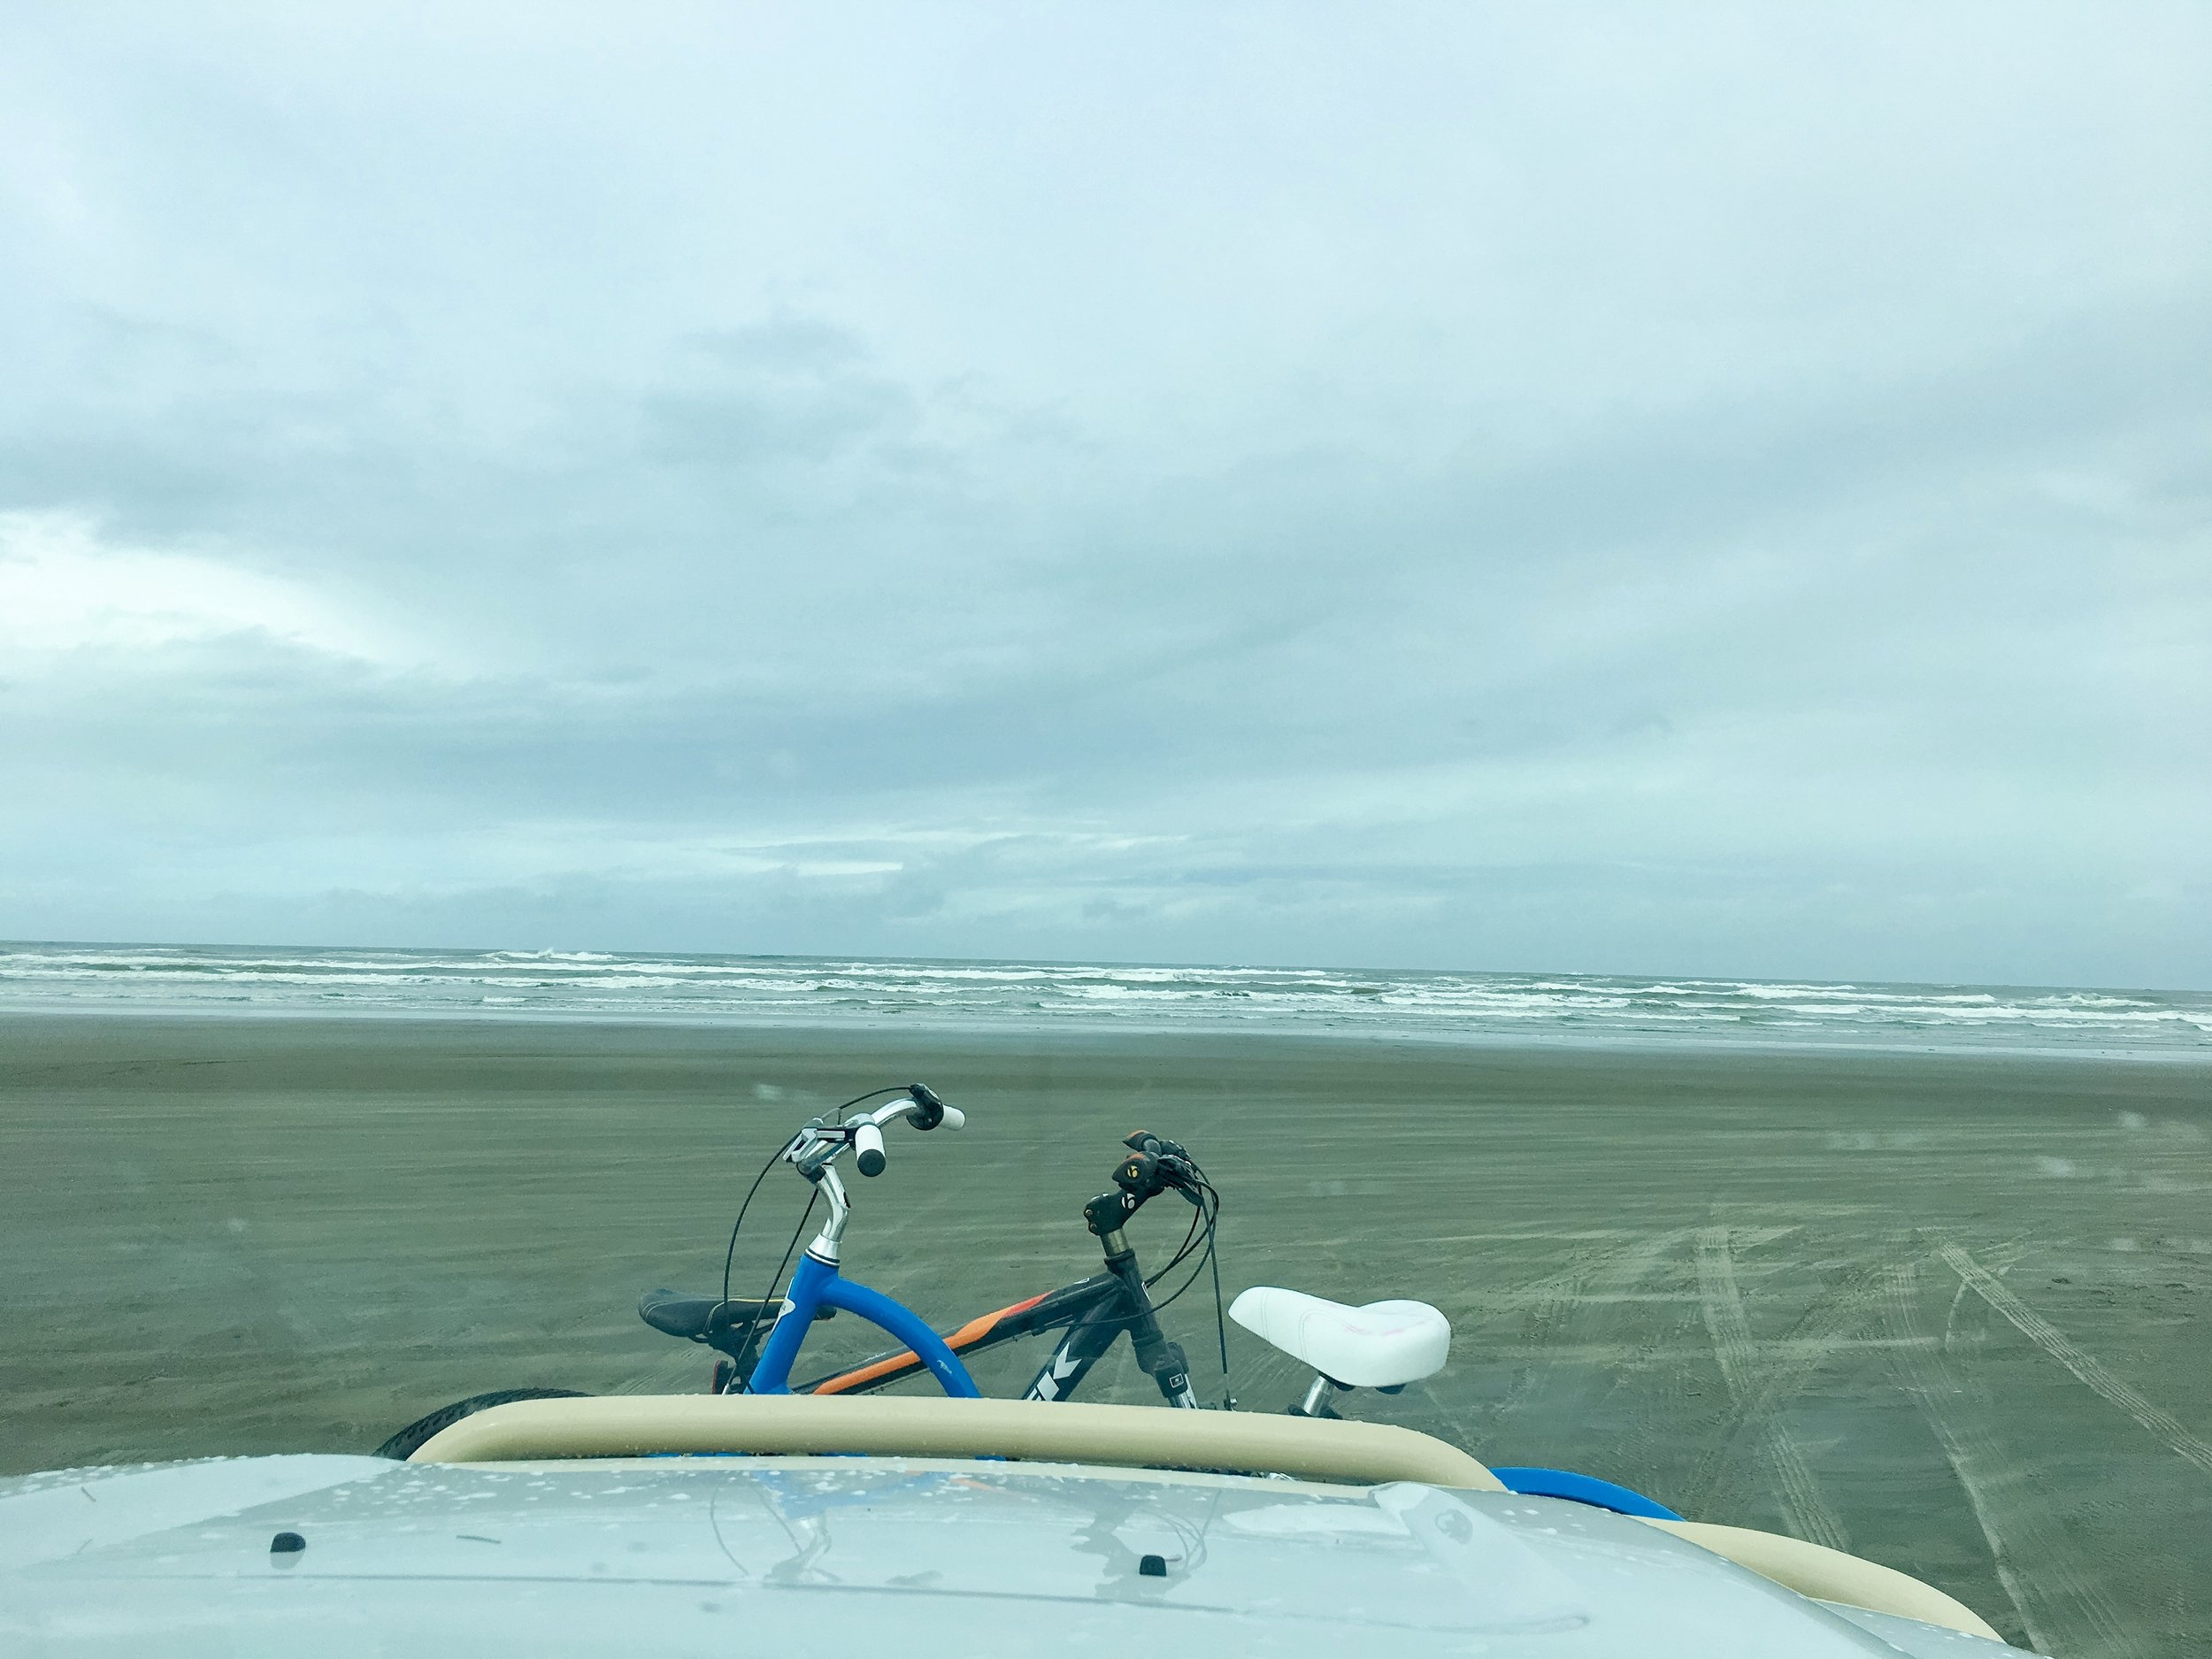 We drove out onto the beach in Long Beach, WA. It is the longest beach in the US at 28 miles.